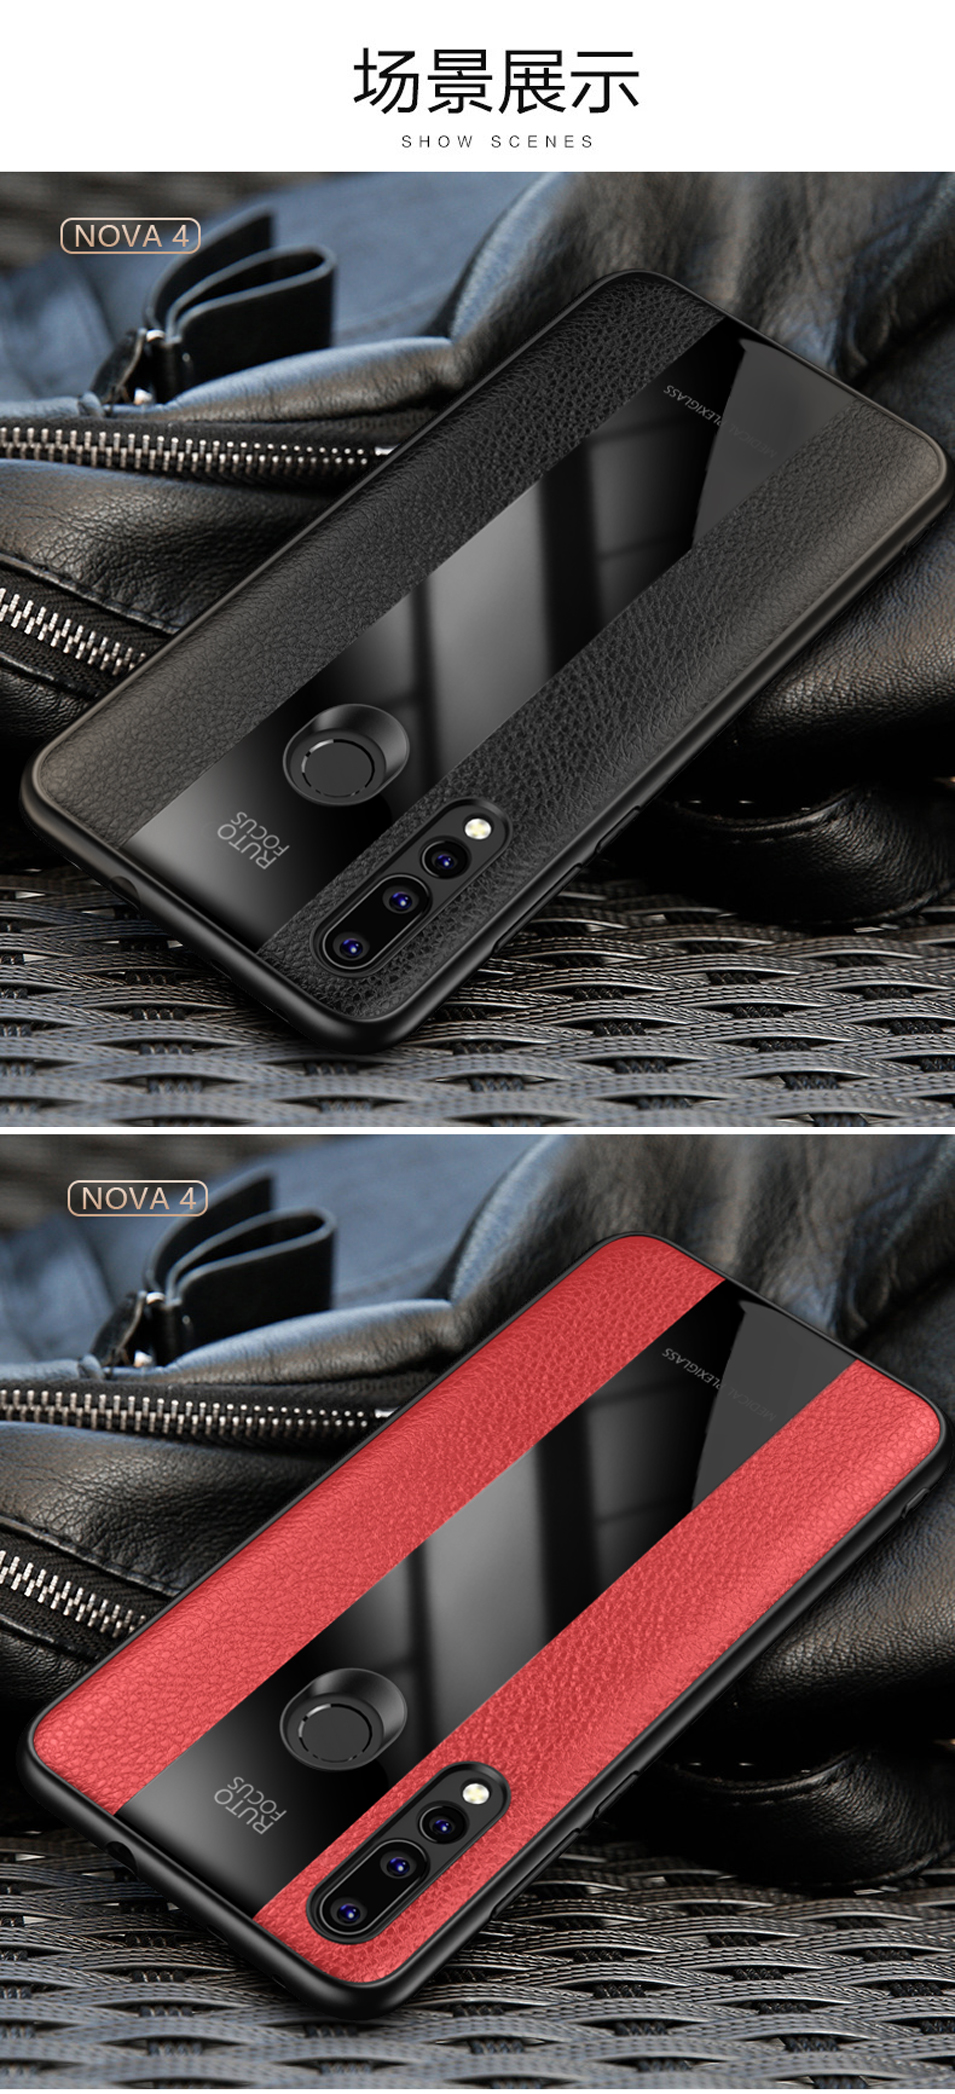 Phone Protective Case for Huawei P Smart 2019 Cover Luxury PU Leather Black Glass Case for Huawei P20 Pro P9 lite 2017 Nova 4 3i (9)